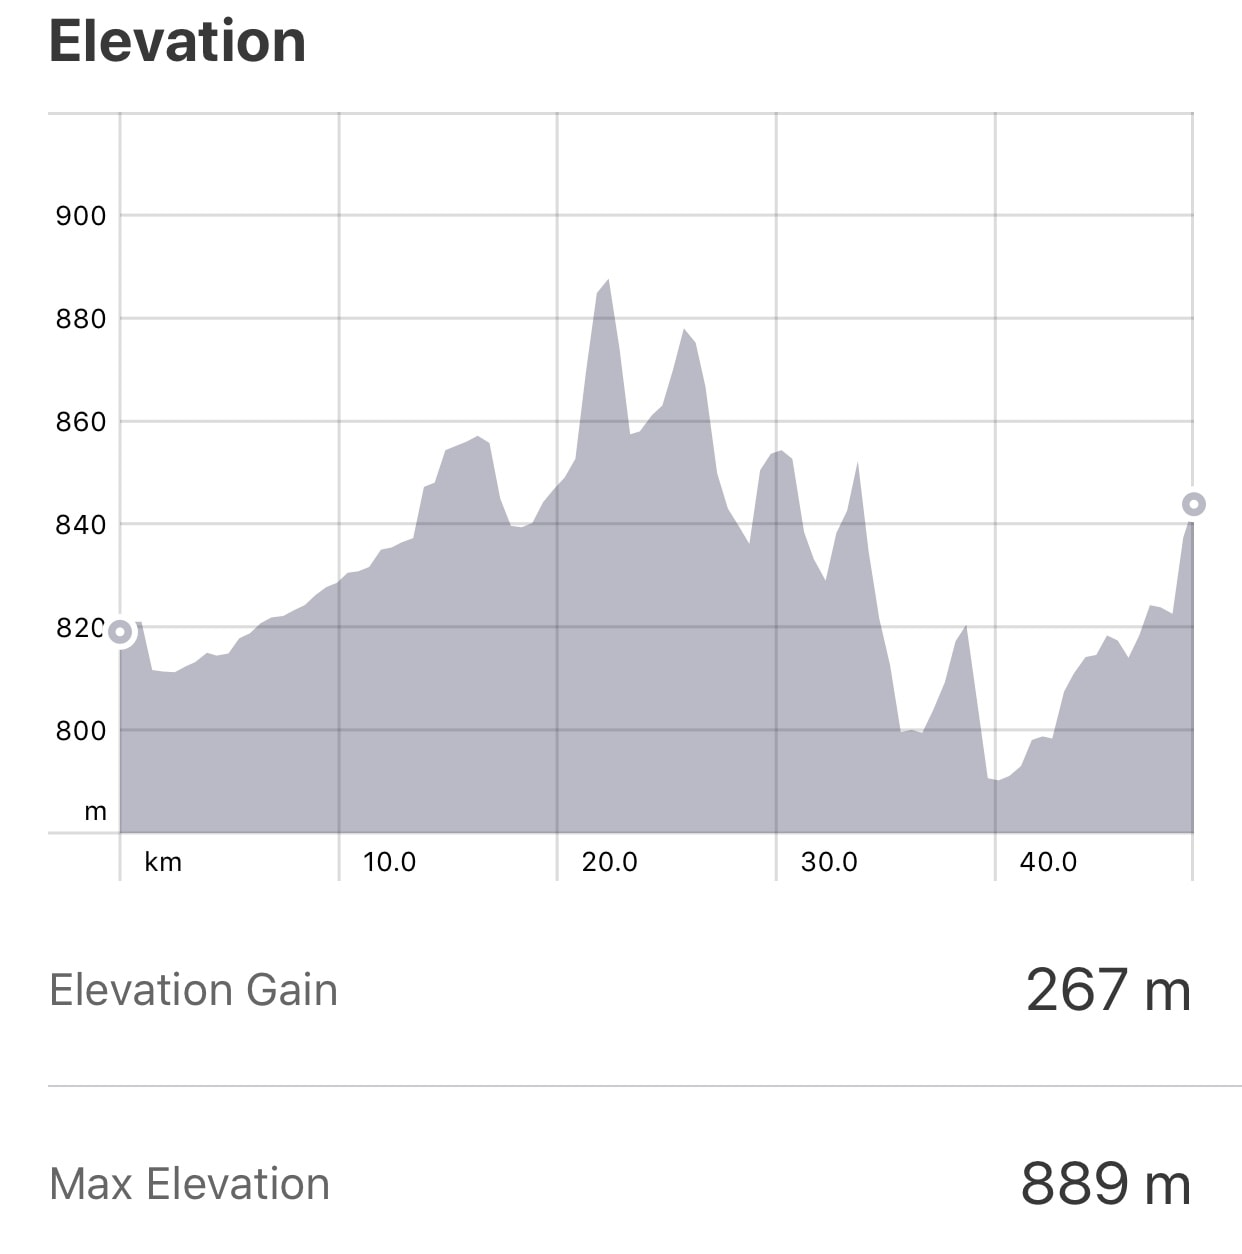 Strava: Carrion de Los Condes to Bercianos del Real Camino Elevation